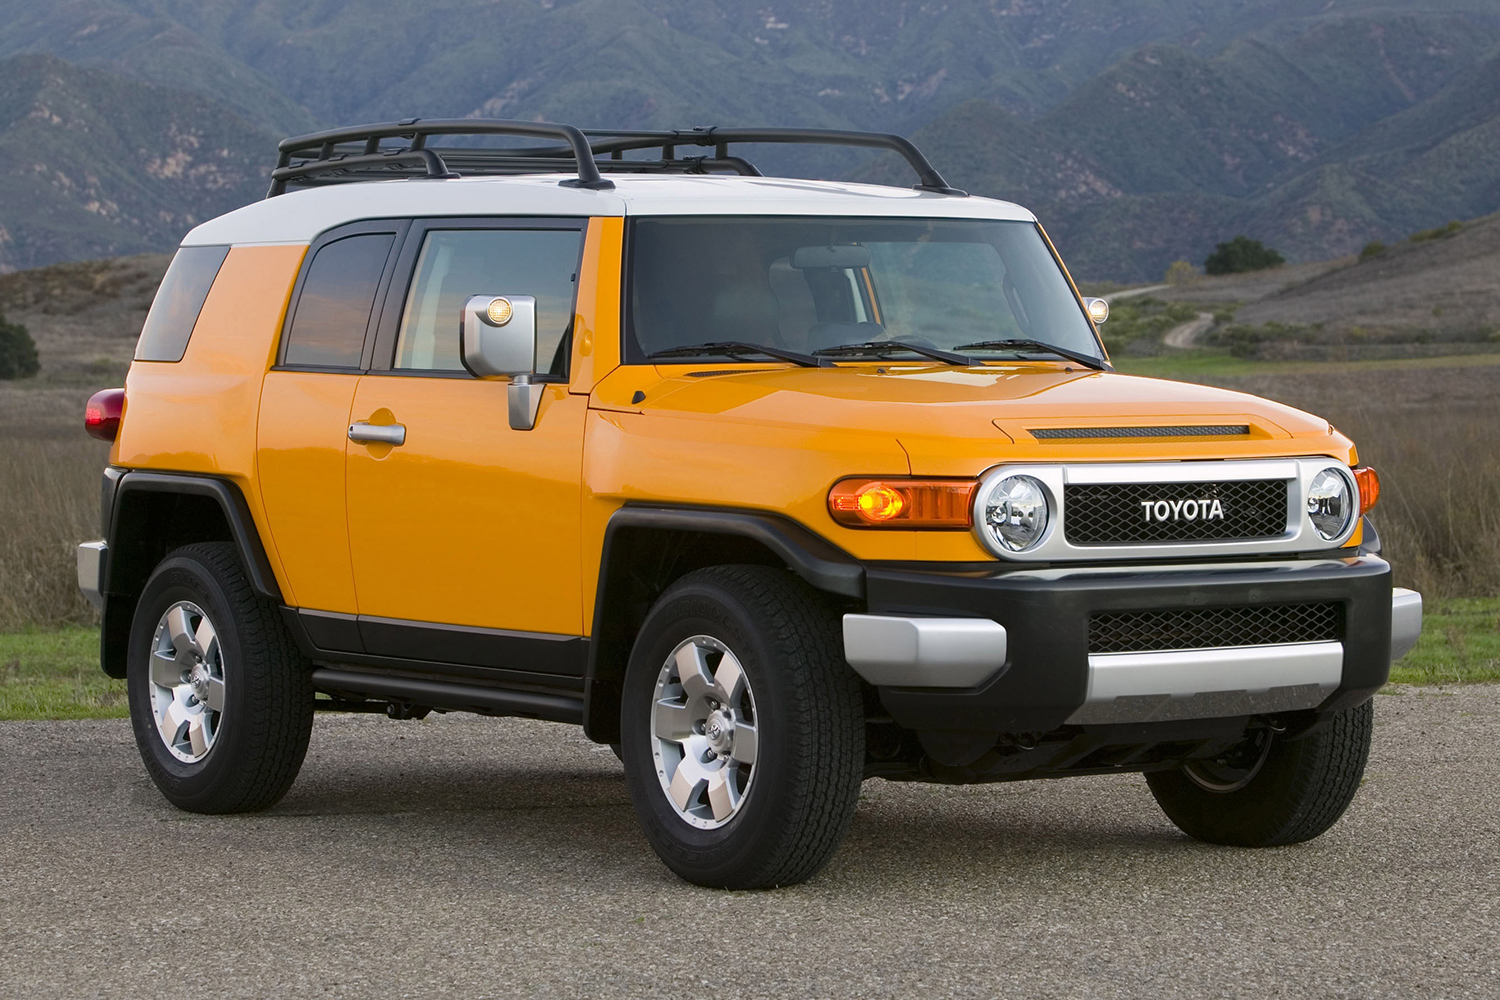 A yellow Toyota FJ Cruiser sitting still on the cement. The vintage off-road SUV was discontinued in 2014 but increasingly popular in 2021.